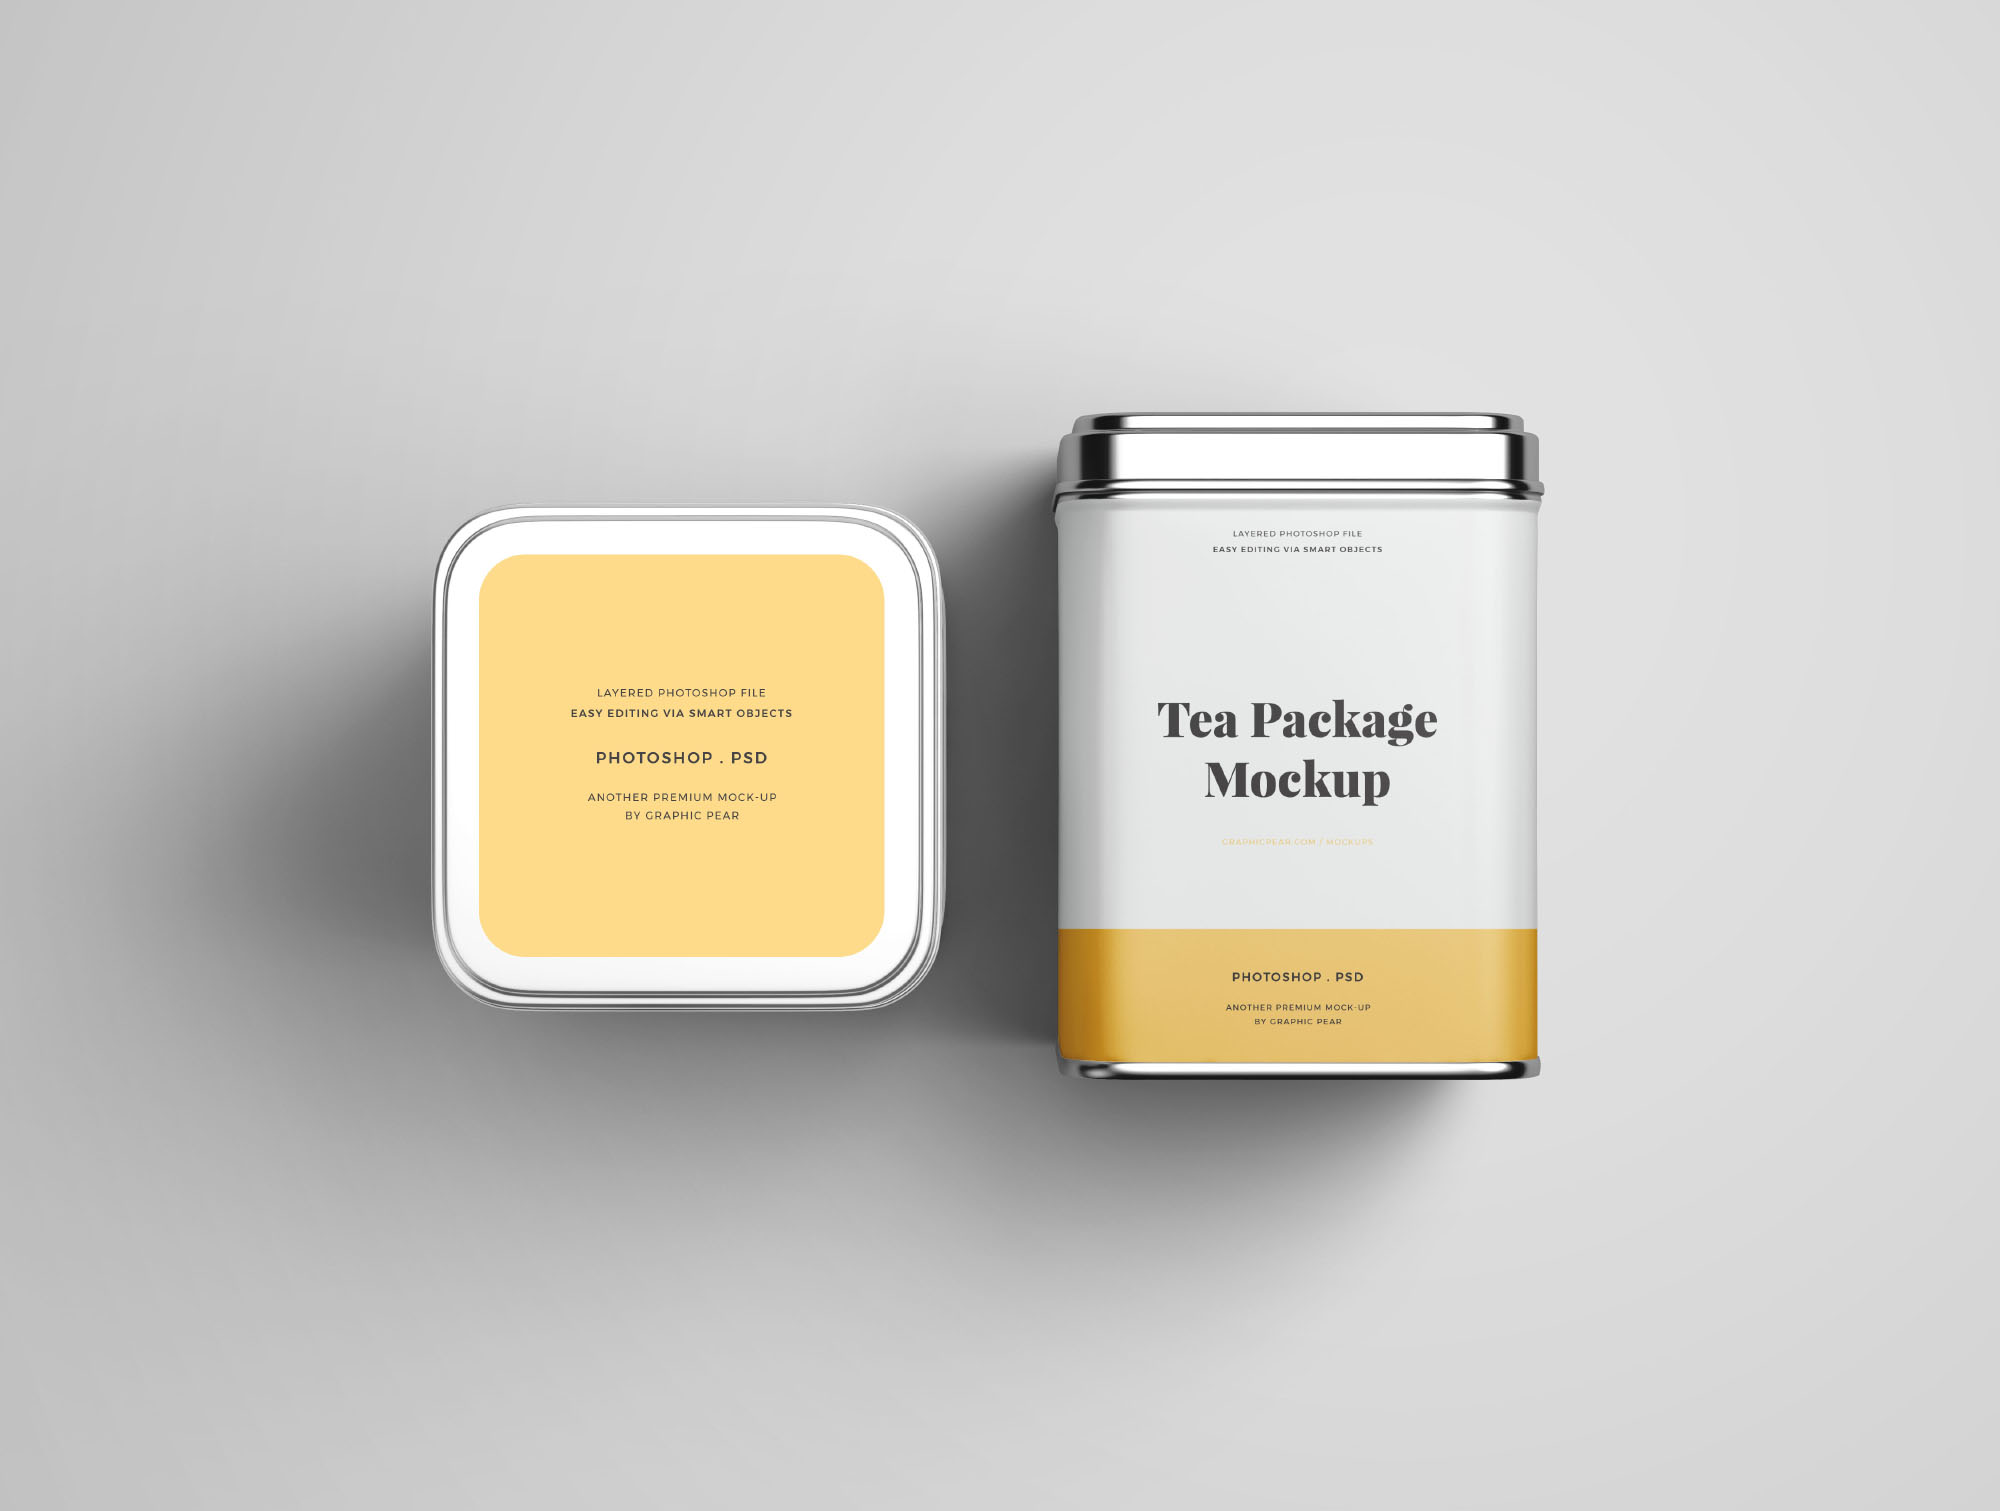 Tea Package Mockup - Top & Front